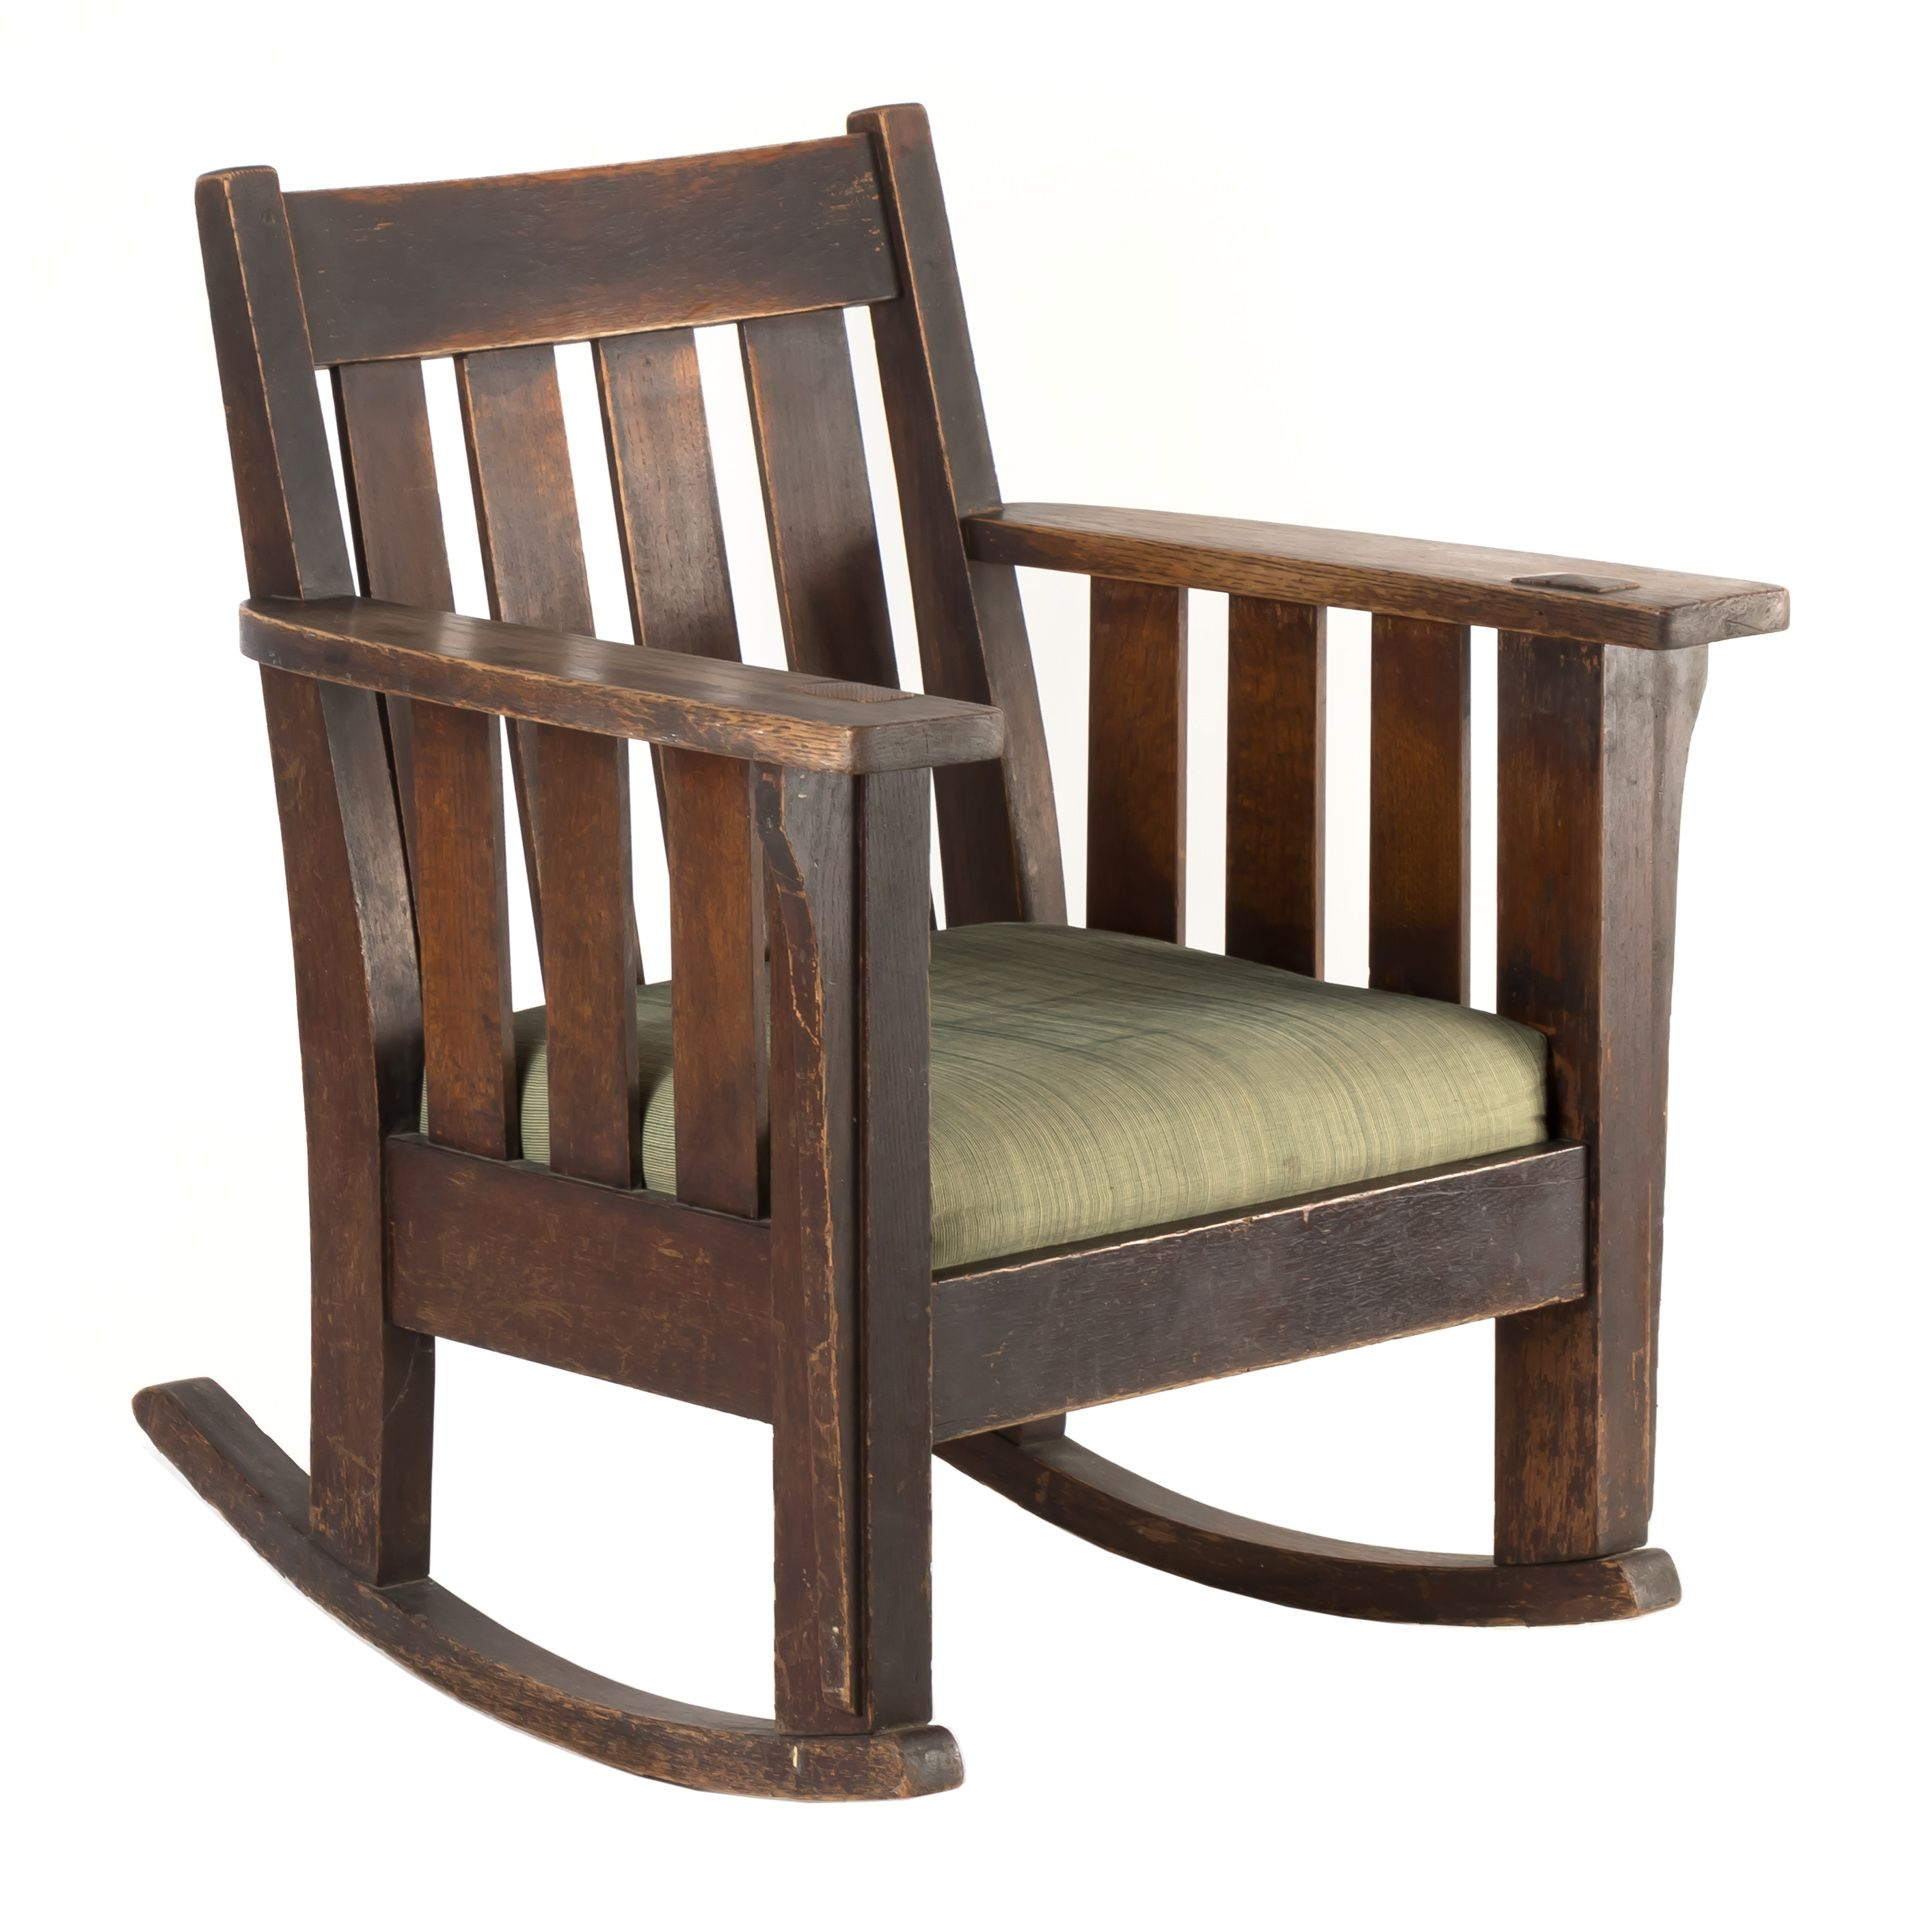 This Early 20th Century Mission Style Rocking Chair Is Done In The